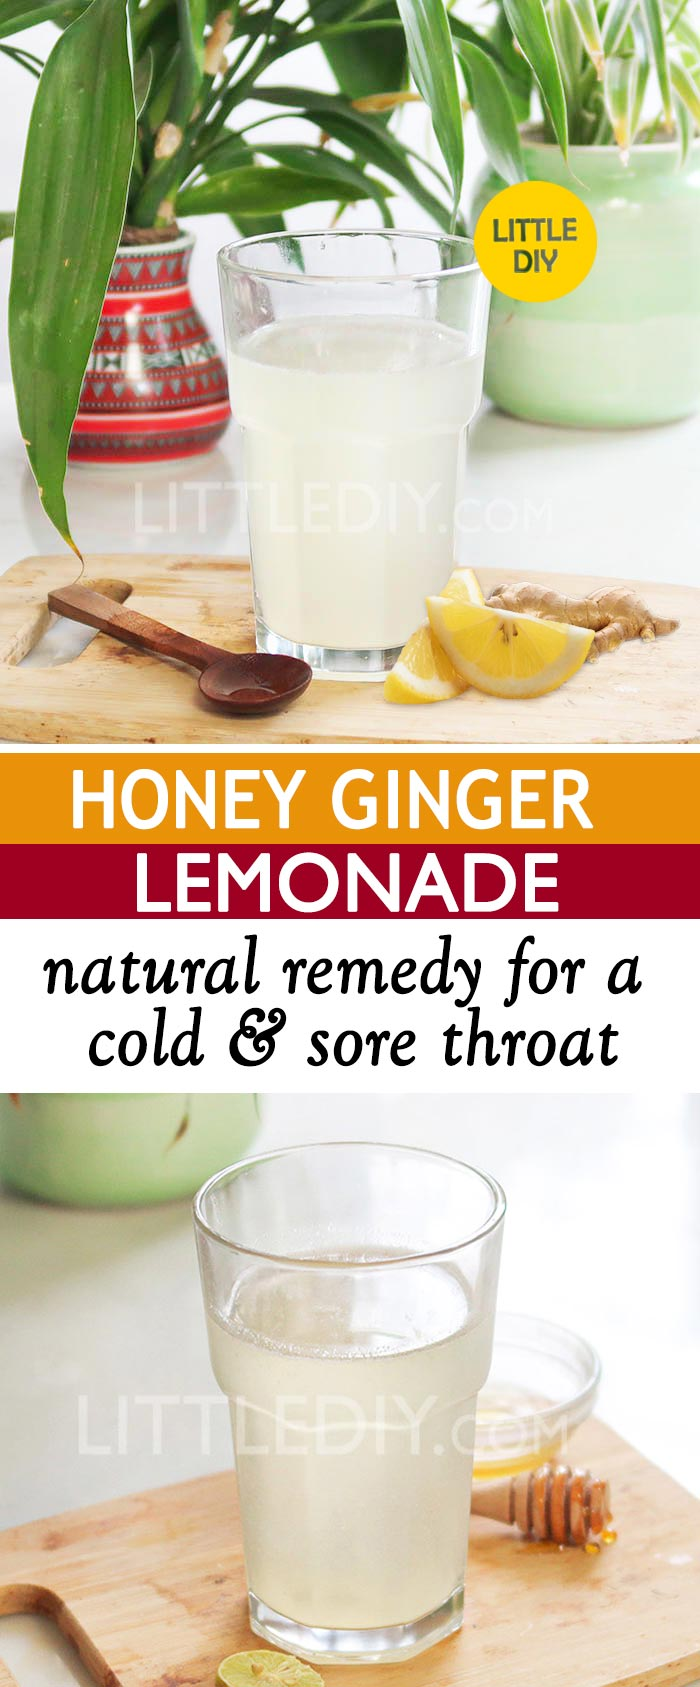 HONEY GINGER LEMONADE FOR COLD AND SORE THROAT